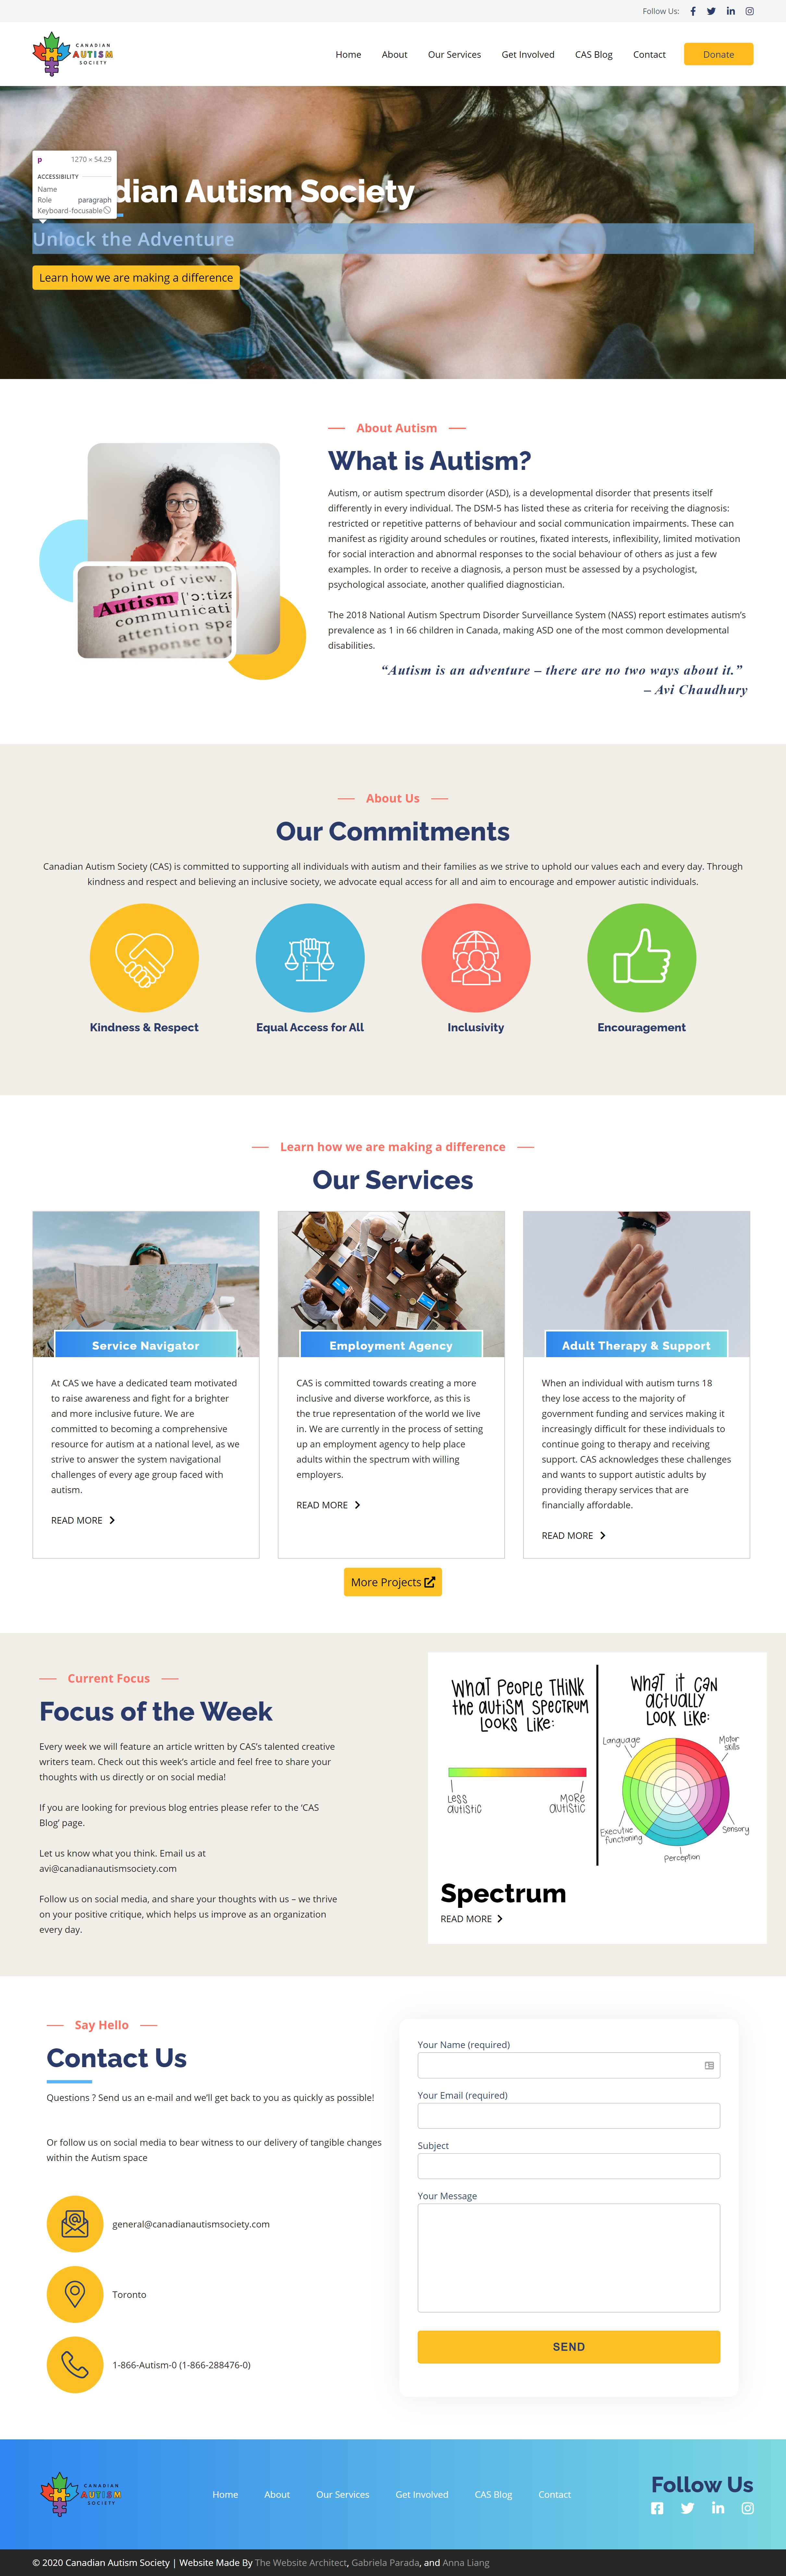 Canadian autism society wordpress website screenshot